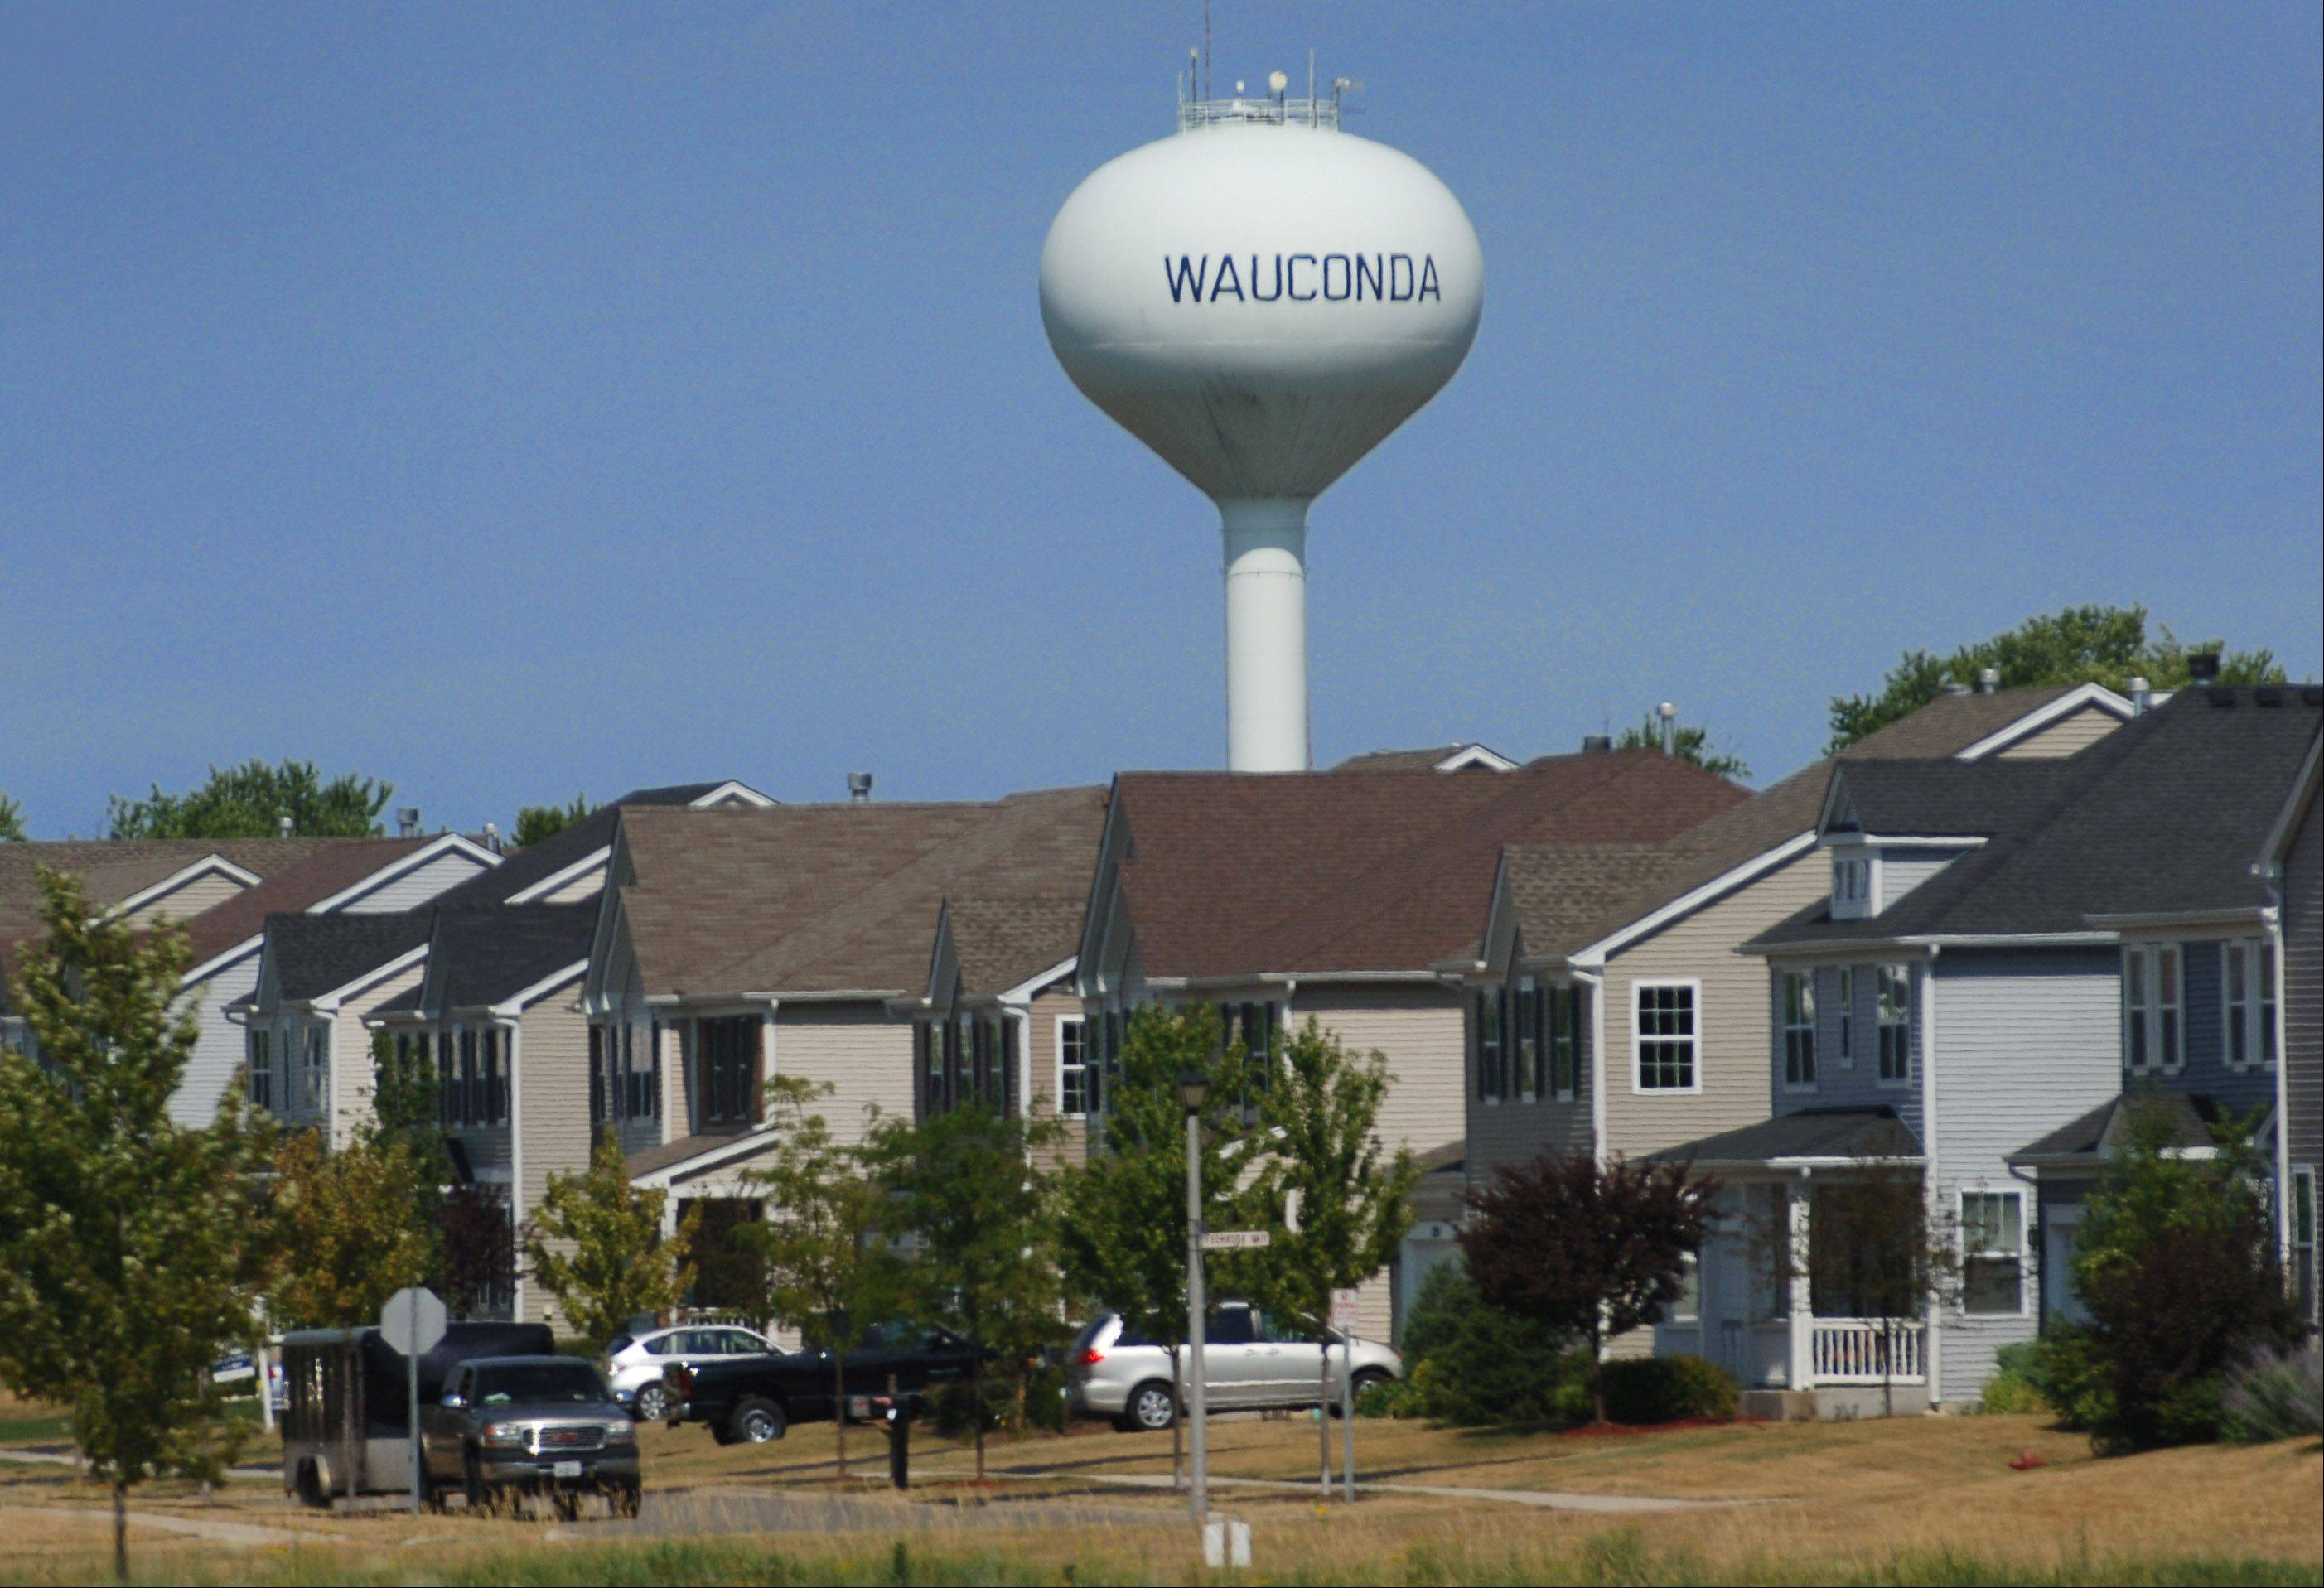 Should Wauconda get water from Lake Michigan?